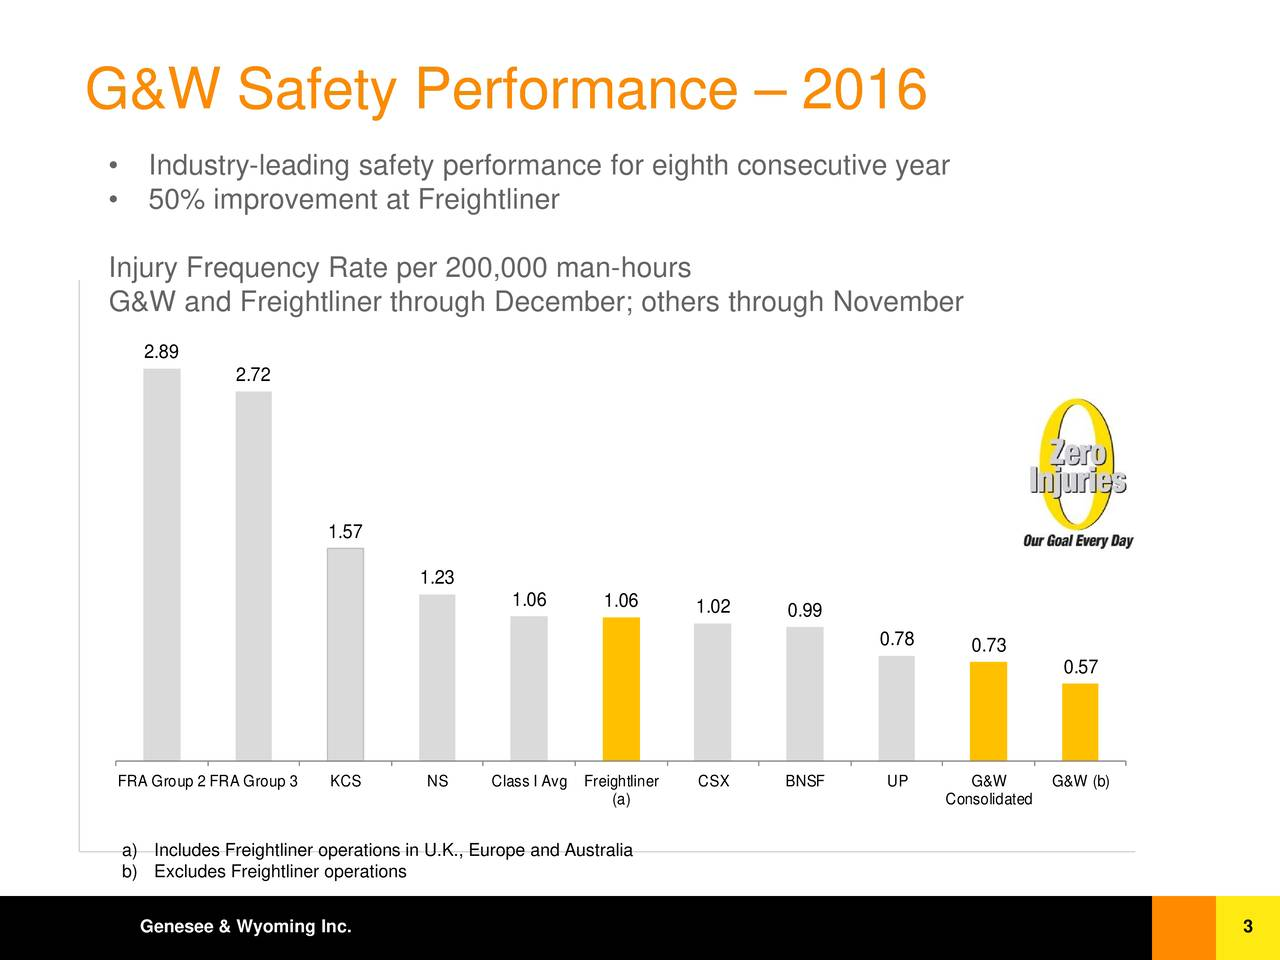 Industry-leading safety performance for eighth consecutive year 50% improvement at Freightliner Injury Frequency Rate per 200,000 man-hours G&W and Freightliner through December; others through November 2.89 2.72 1.57 1.23 1.06 1.06 1.02 0.99 0.78 0.73 0.57 FRA Group 2FRA Group 3KCS NS Class I Avg FreightliCSX BNSF UP G&W G&W (b) (a) Consolidated a) Includes Freightliner operations in U.K., Europe and Australia b) Excludes Freightliner operations Genesee & Wyoming Inc. 3